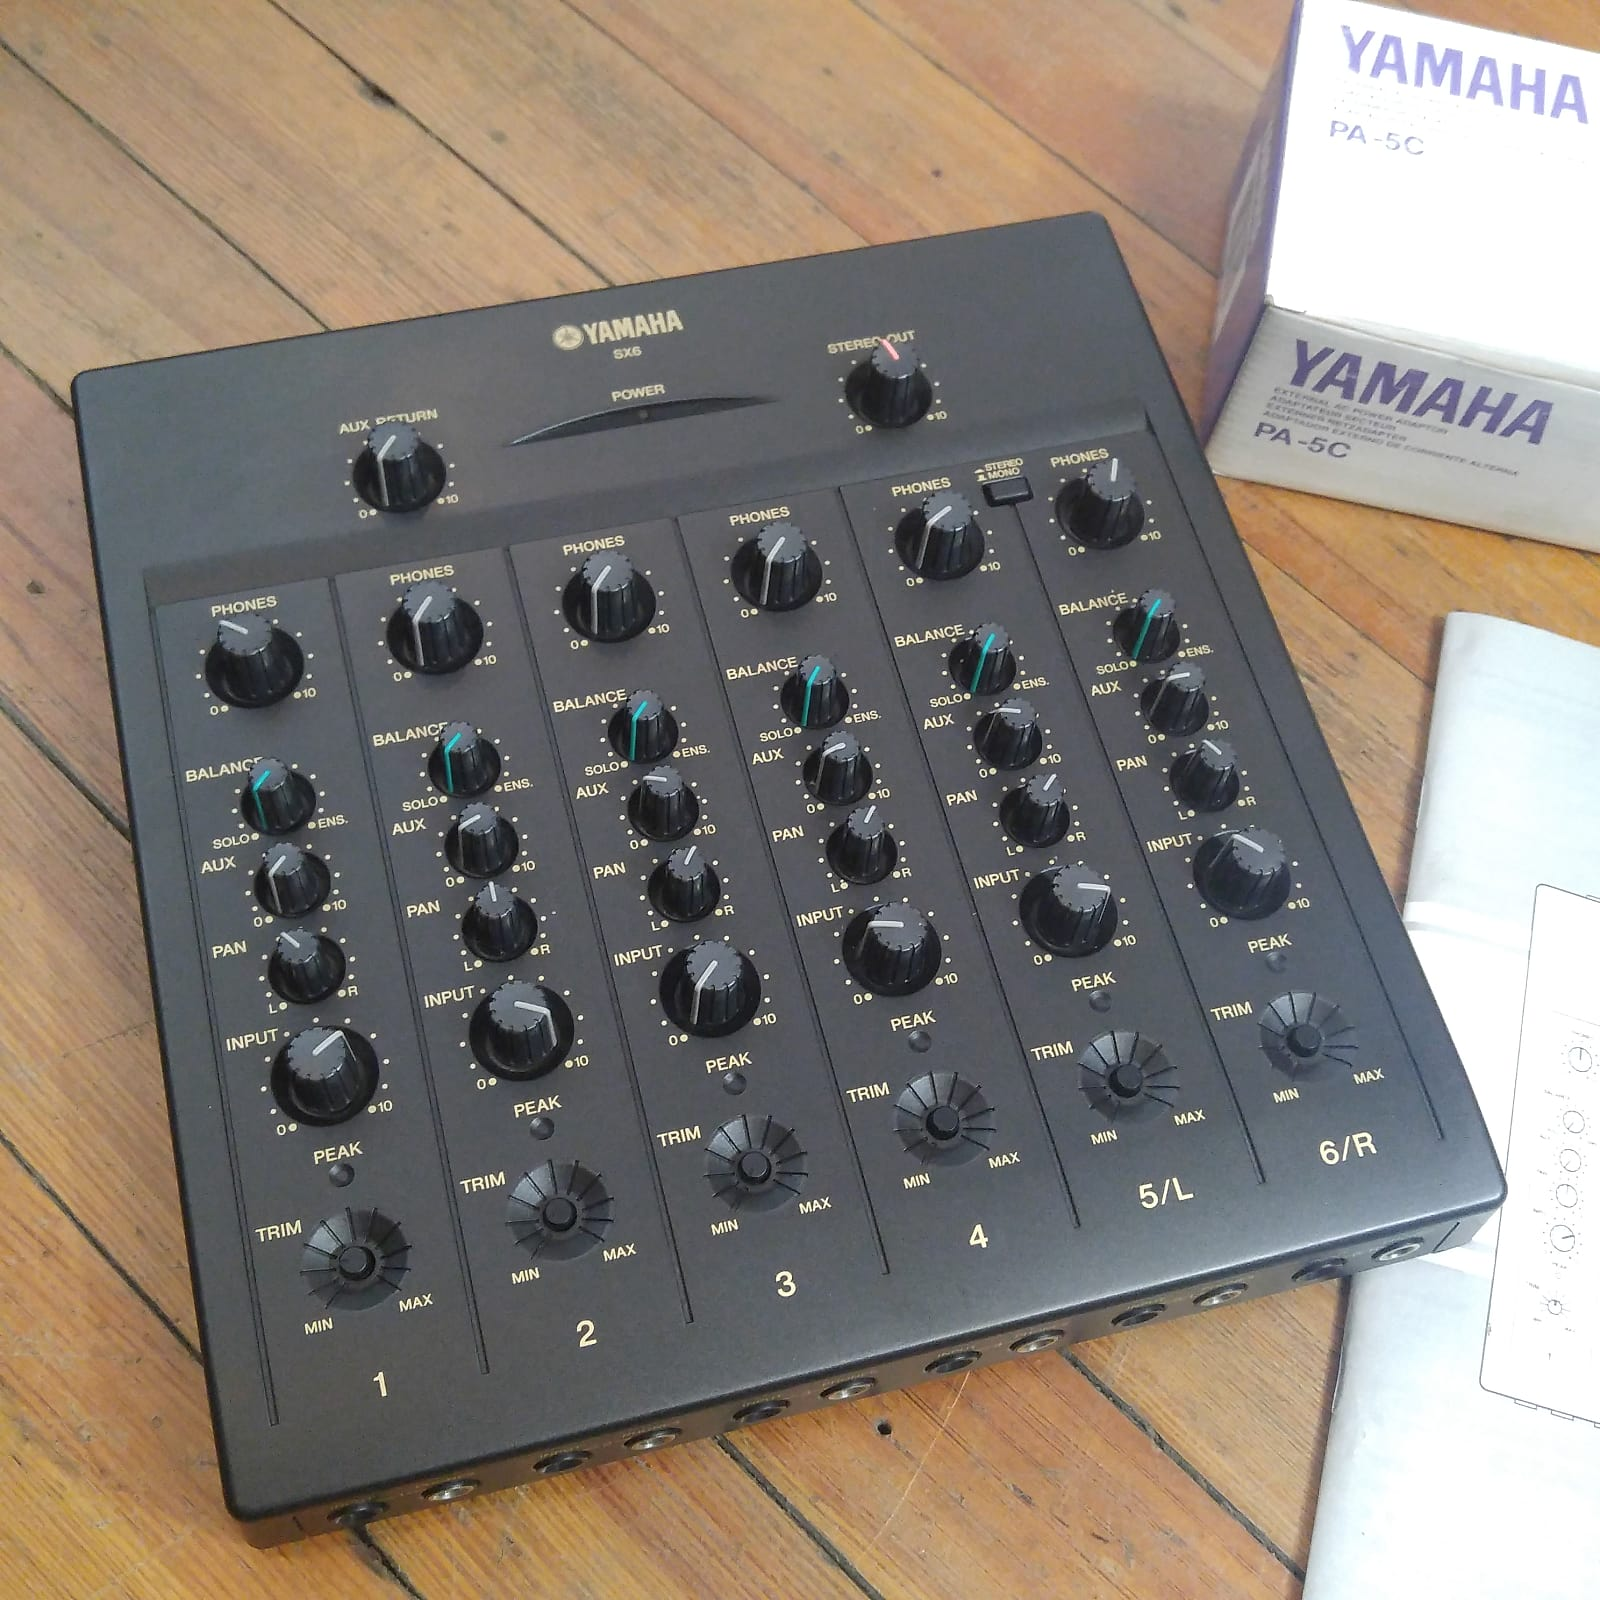 Yamaha SX6 Silent Studio 6 Channel Mixer 1262 W PA 5C Power Supply Manual